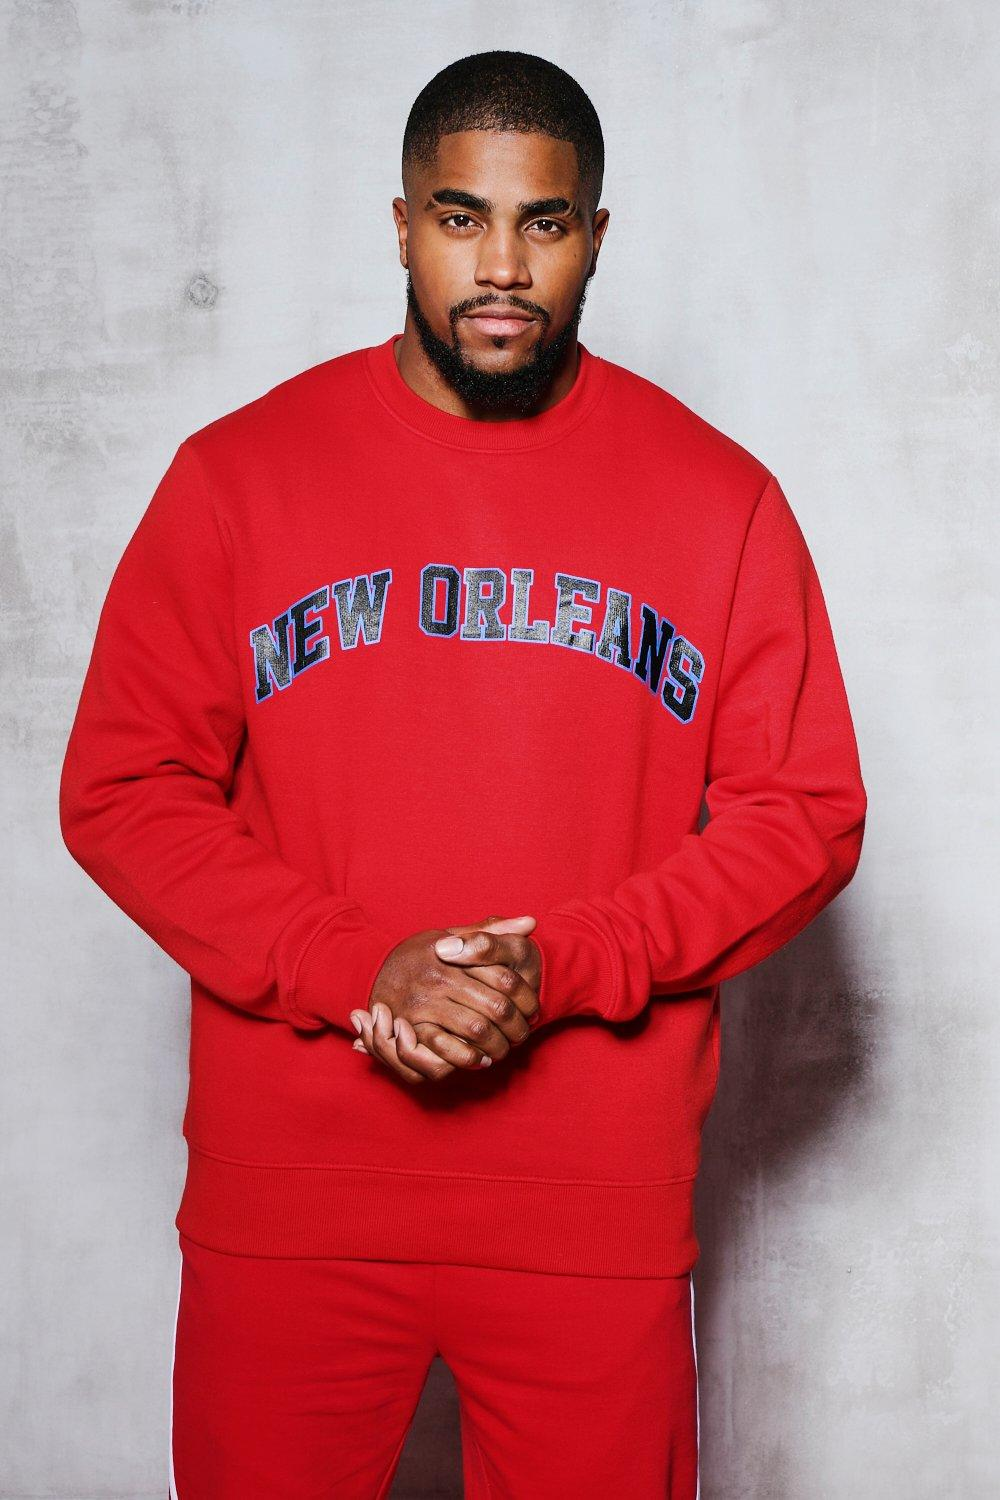 Big And Tall New Orleans Sweater